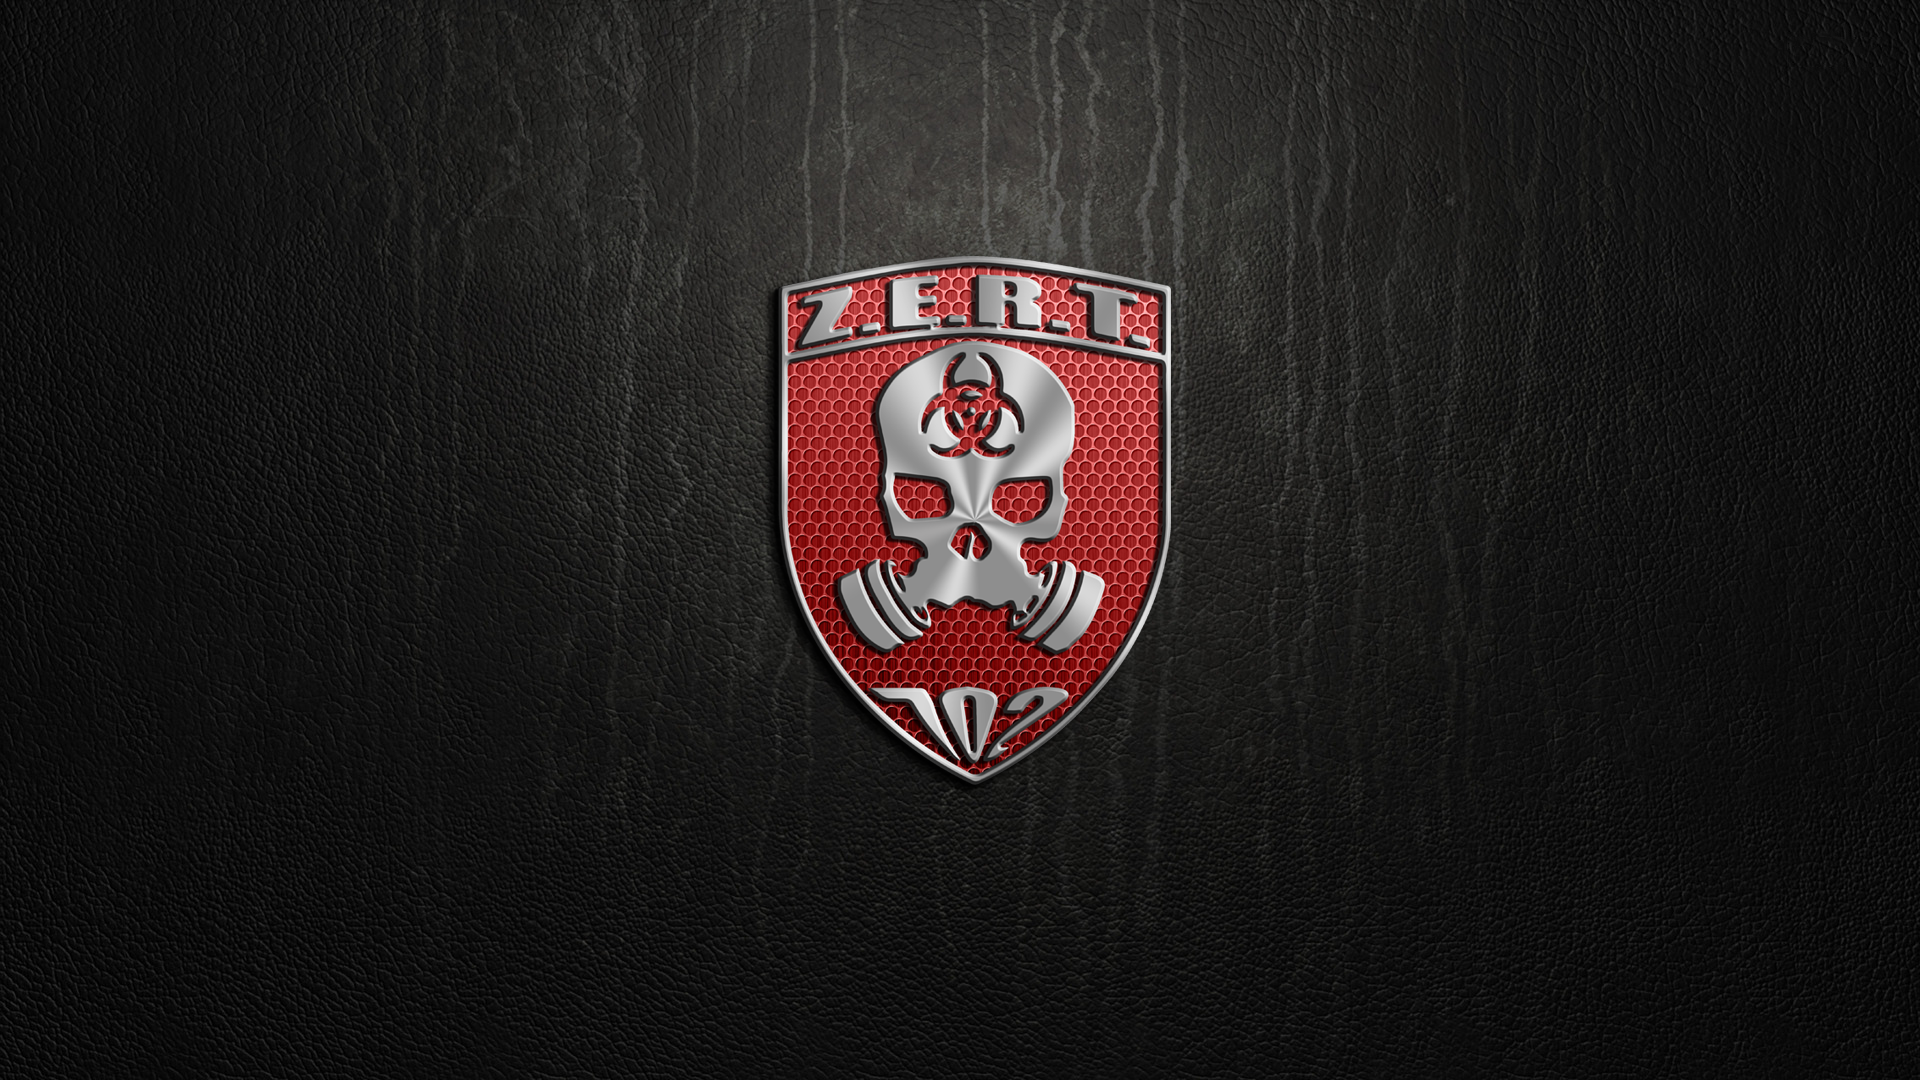 2 ZERT HD Wallpapers Background Images 1920x1080